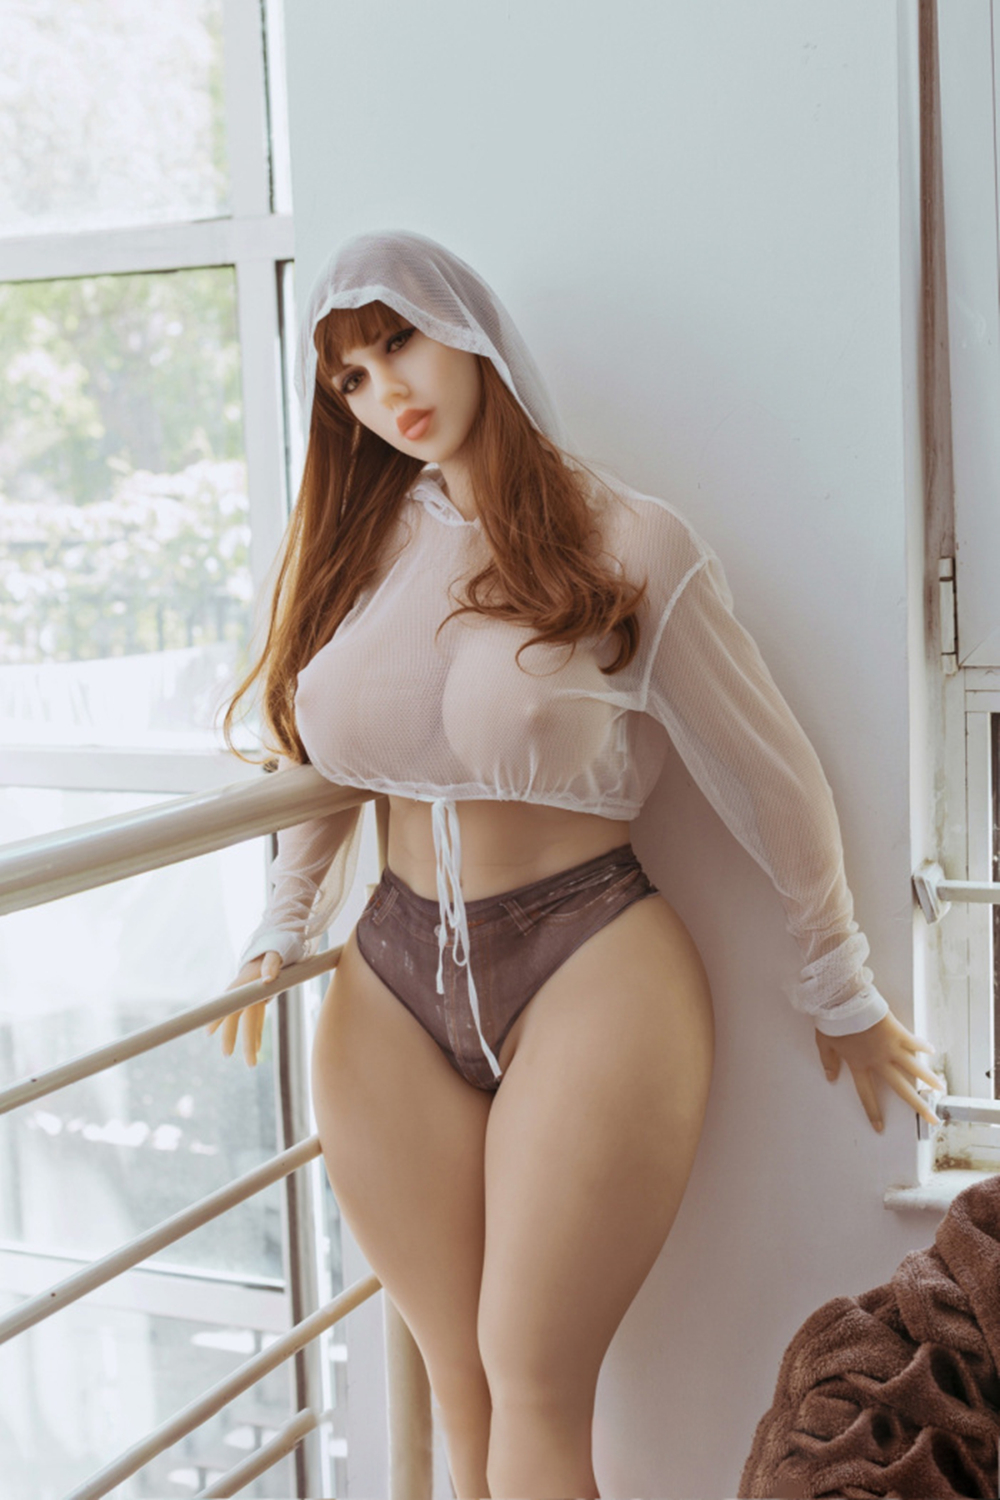 Fat And Thick Sex Doll